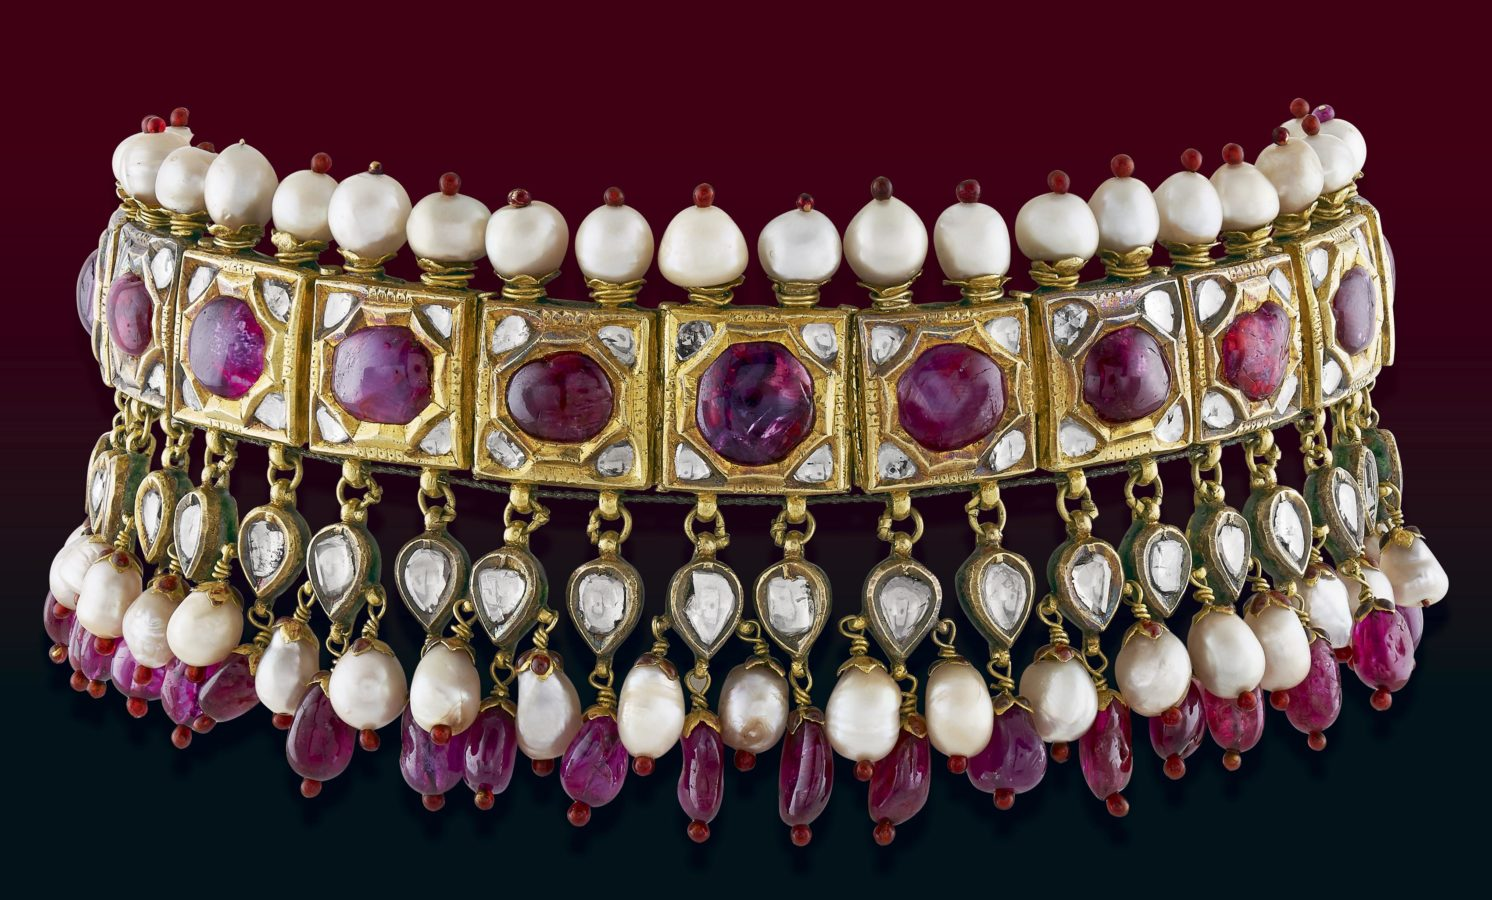 Jewellery specialist Jay Sagar on investing in heirloom and vintage jewellery pieces